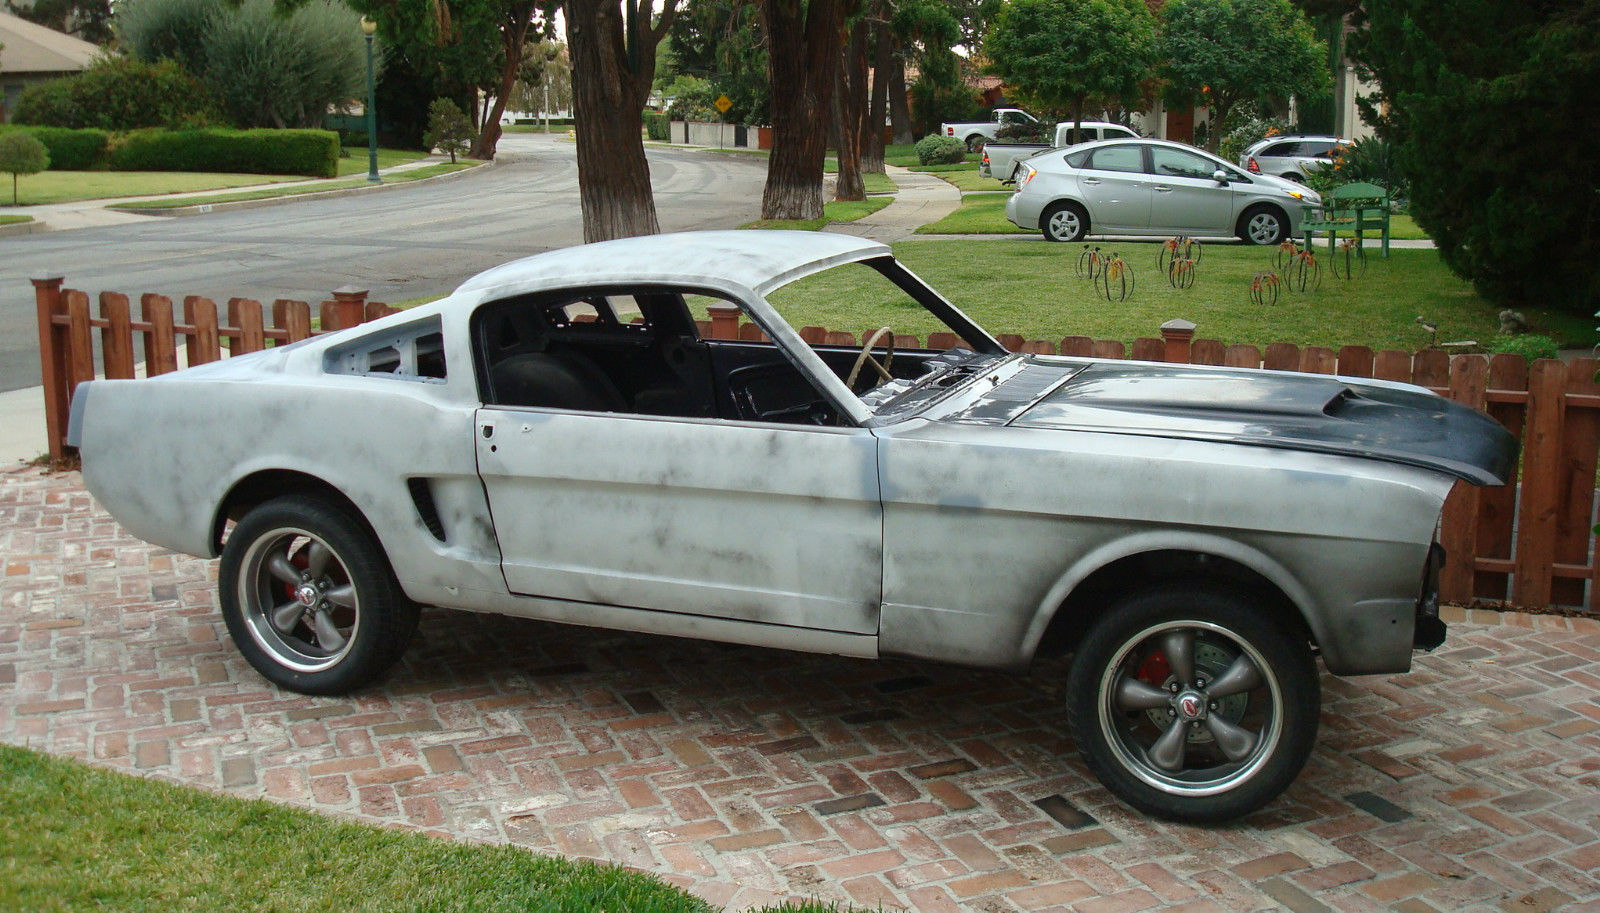 67 mustang fastback project car autos post. Black Bedroom Furniture Sets. Home Design Ideas